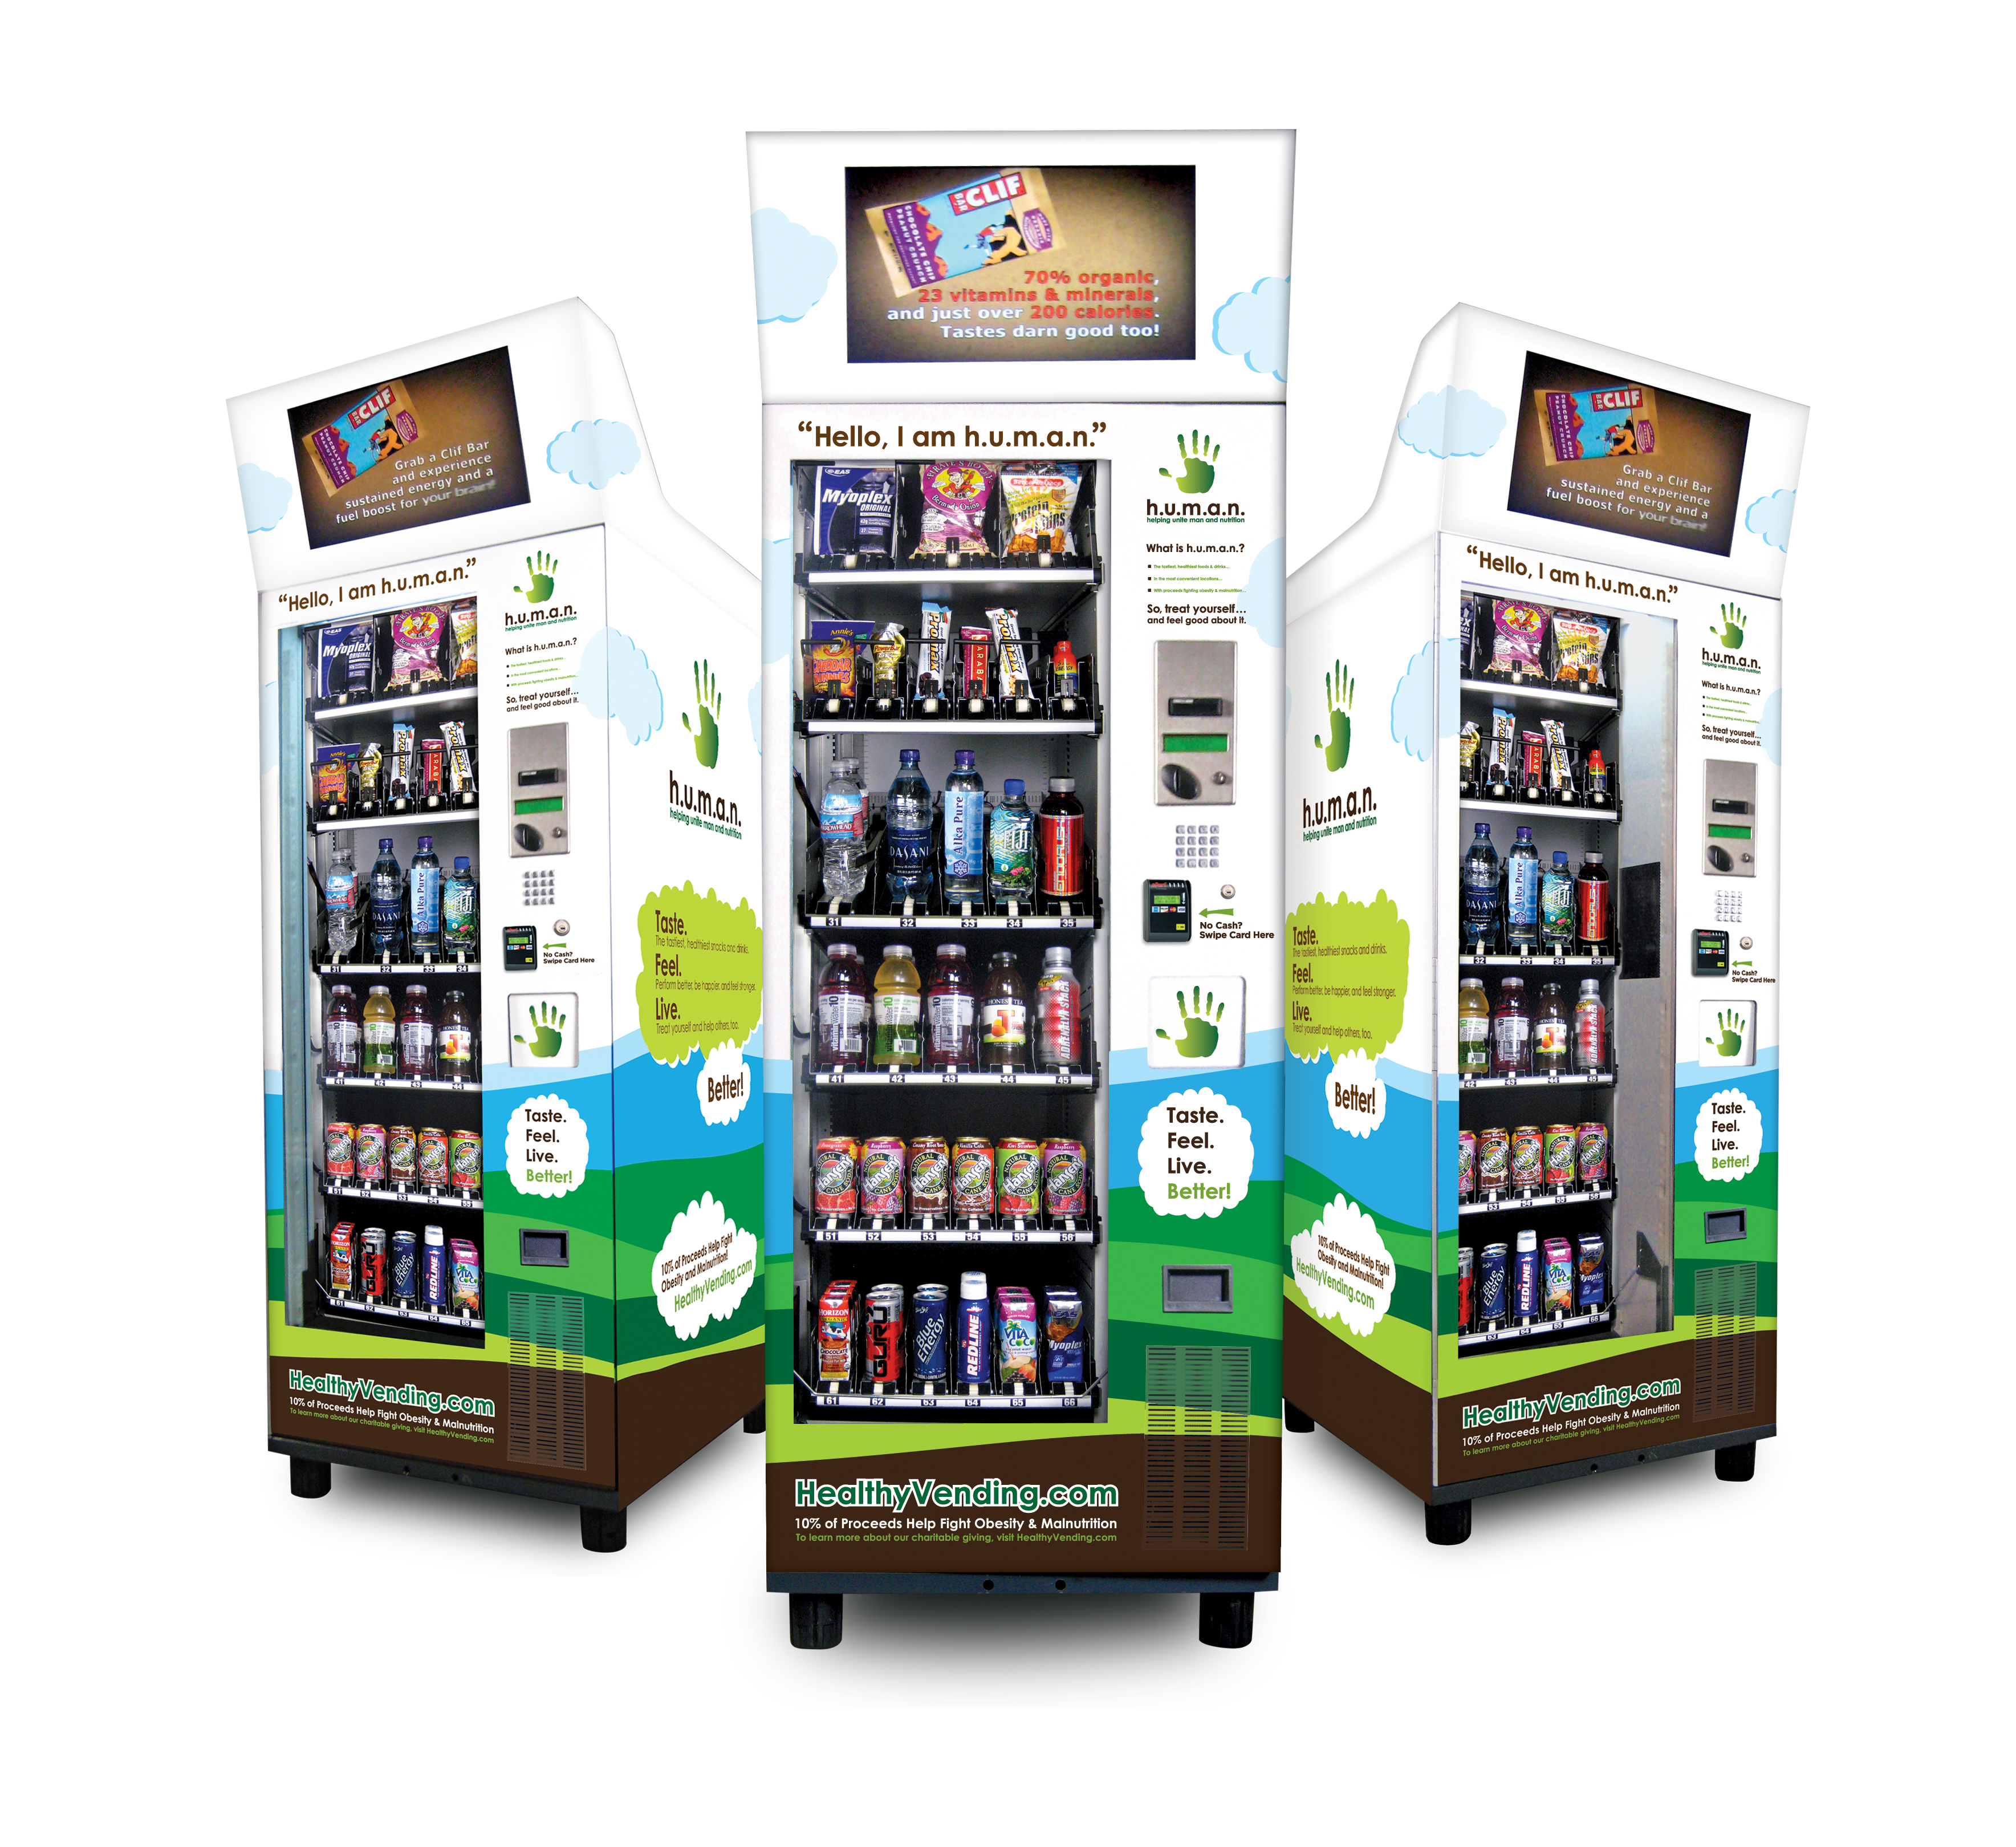 vending machines in school Should vending machines be banned in schools abbas abdulrazak mel4601 dr wadsworth november 2, 2009 obesity is a serious and growing problem among adolescents in the united states.